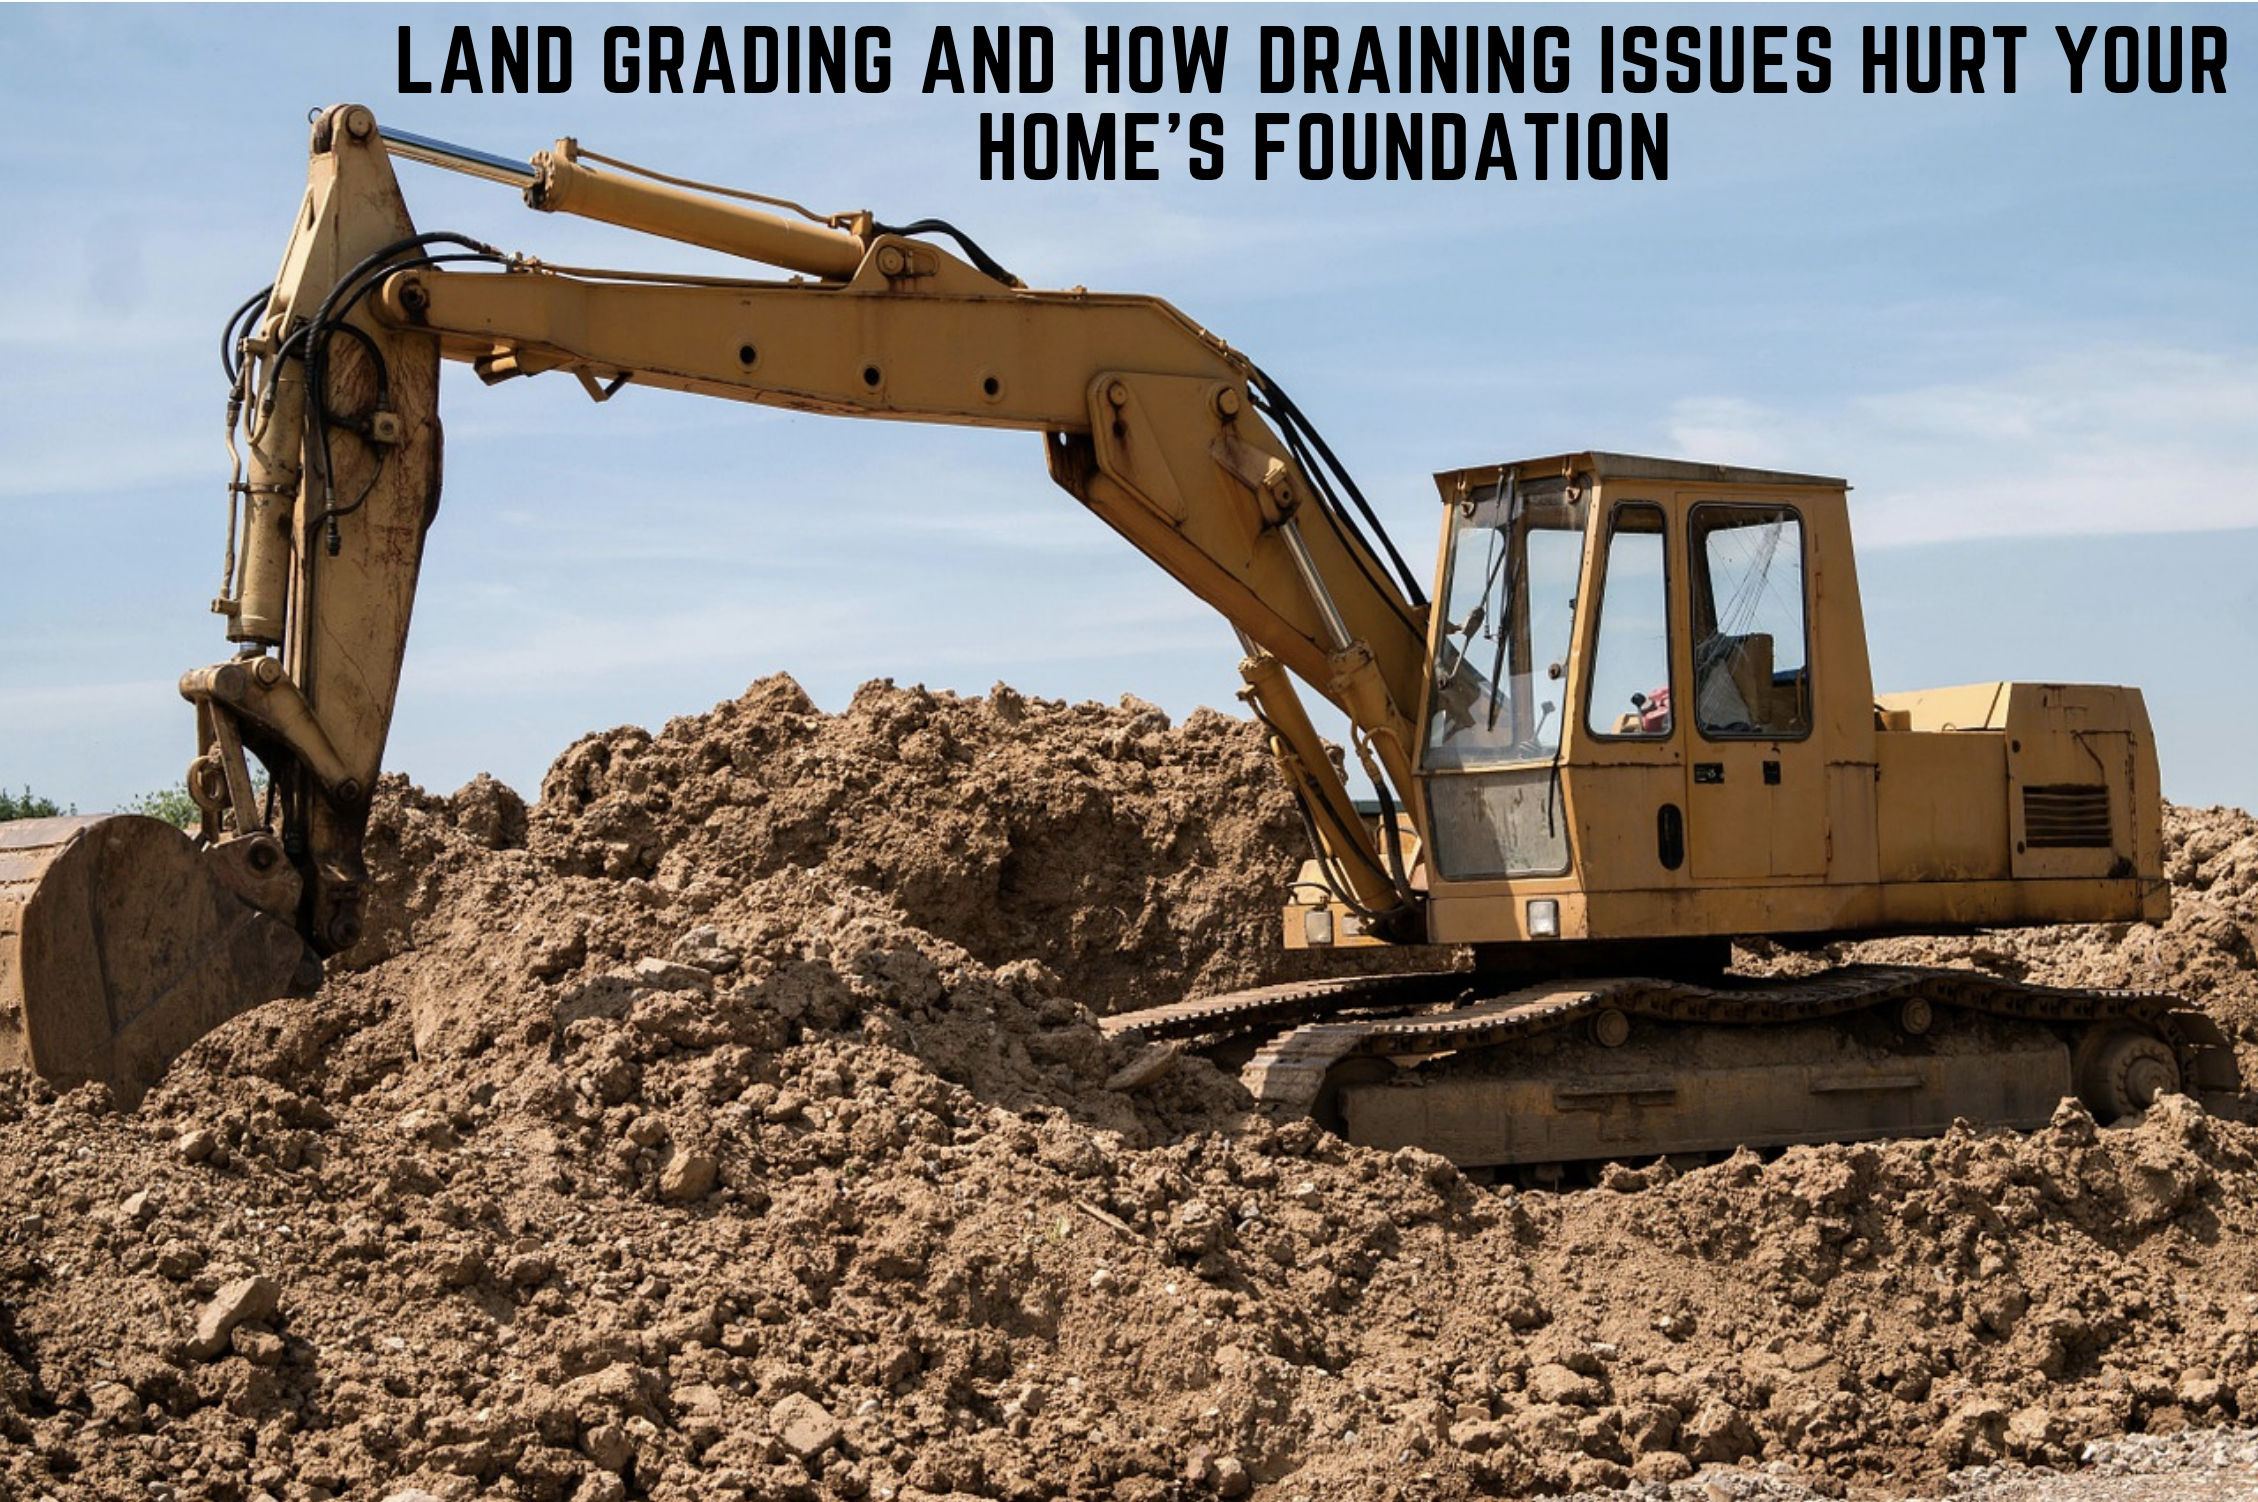 Land Grading and How Draining Issues Hurt Your Home's Foundation